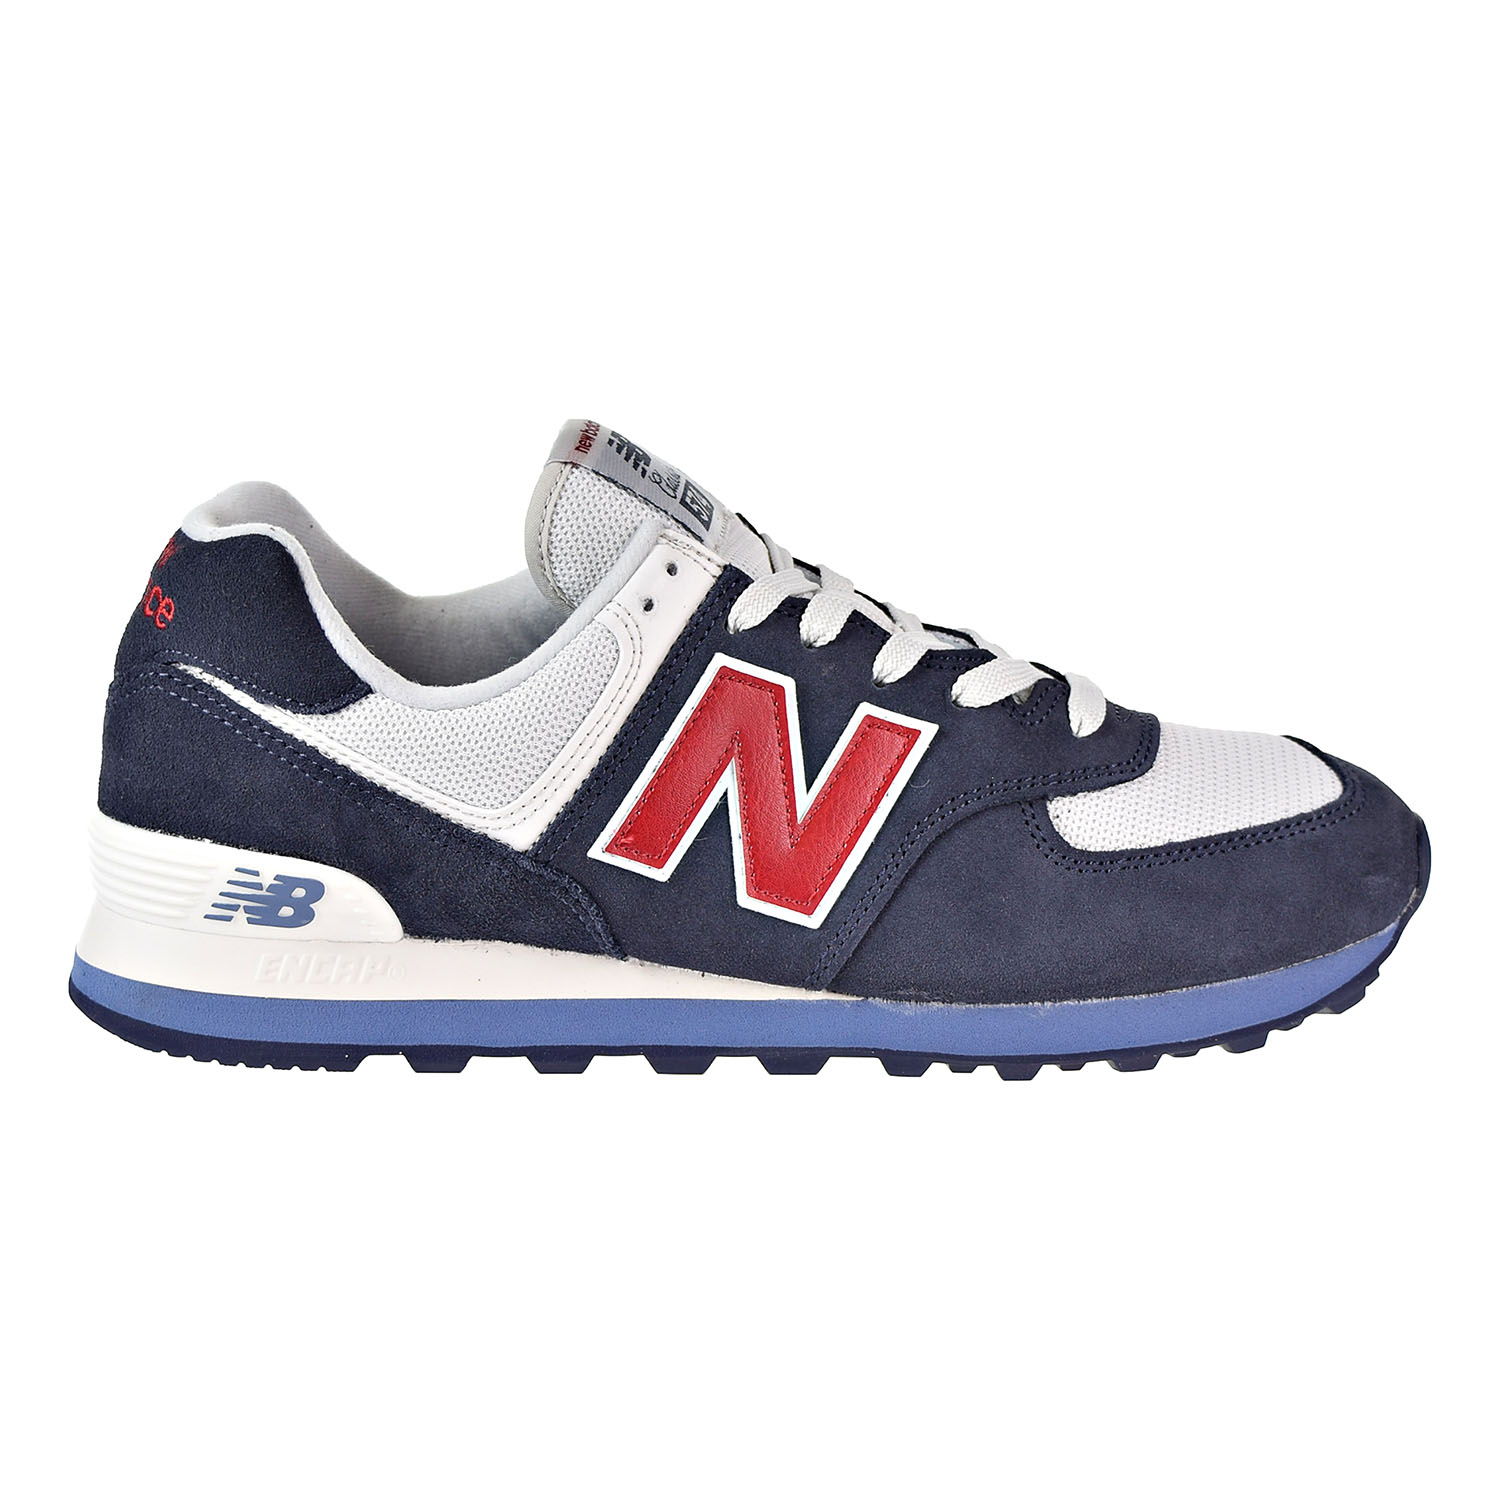 huge discount 97b28 e9875 Details about New Balance 574 Core Plus Men's Shoes Red/Blue/White ML574ESC